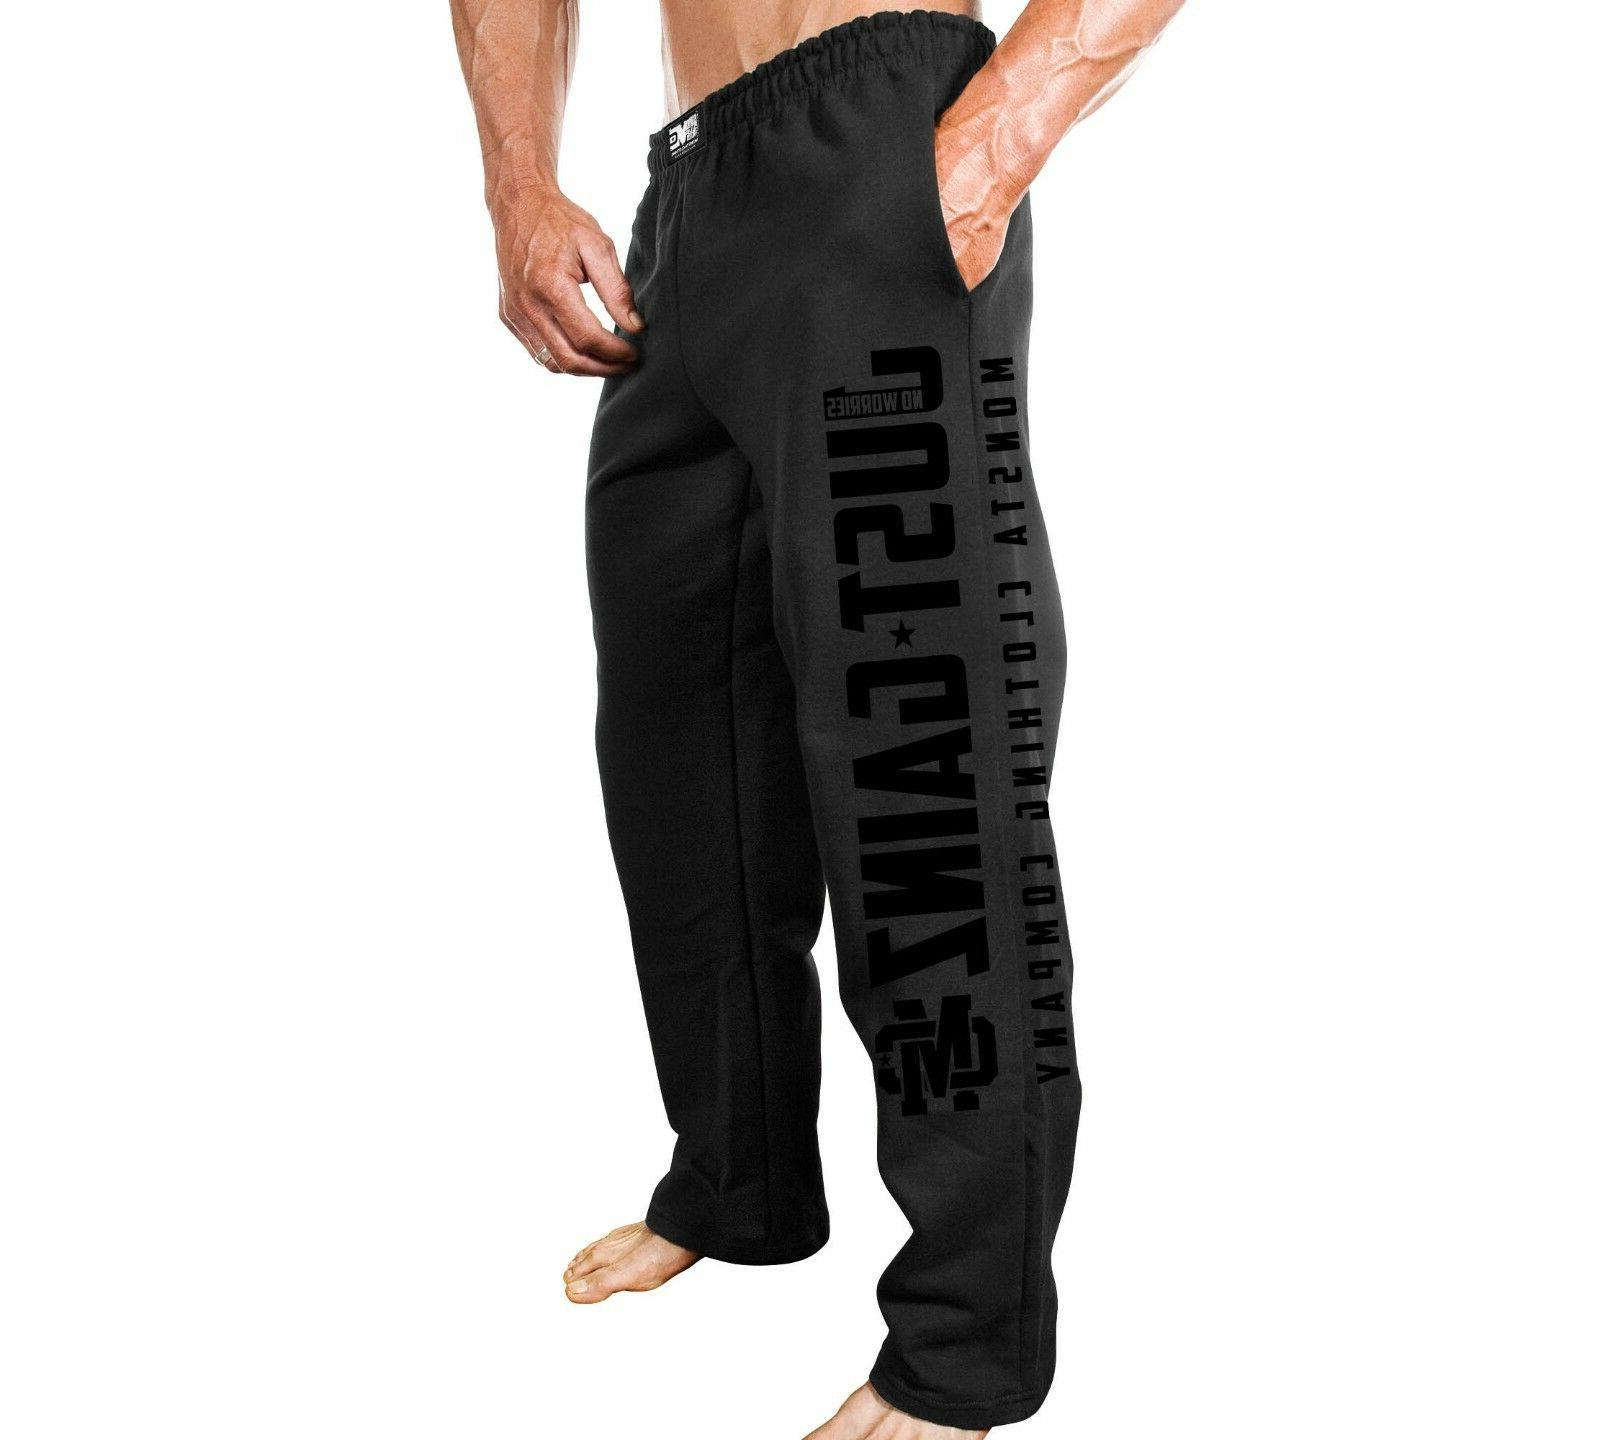 New Clothing Fitness Sweatpants Just Gainz